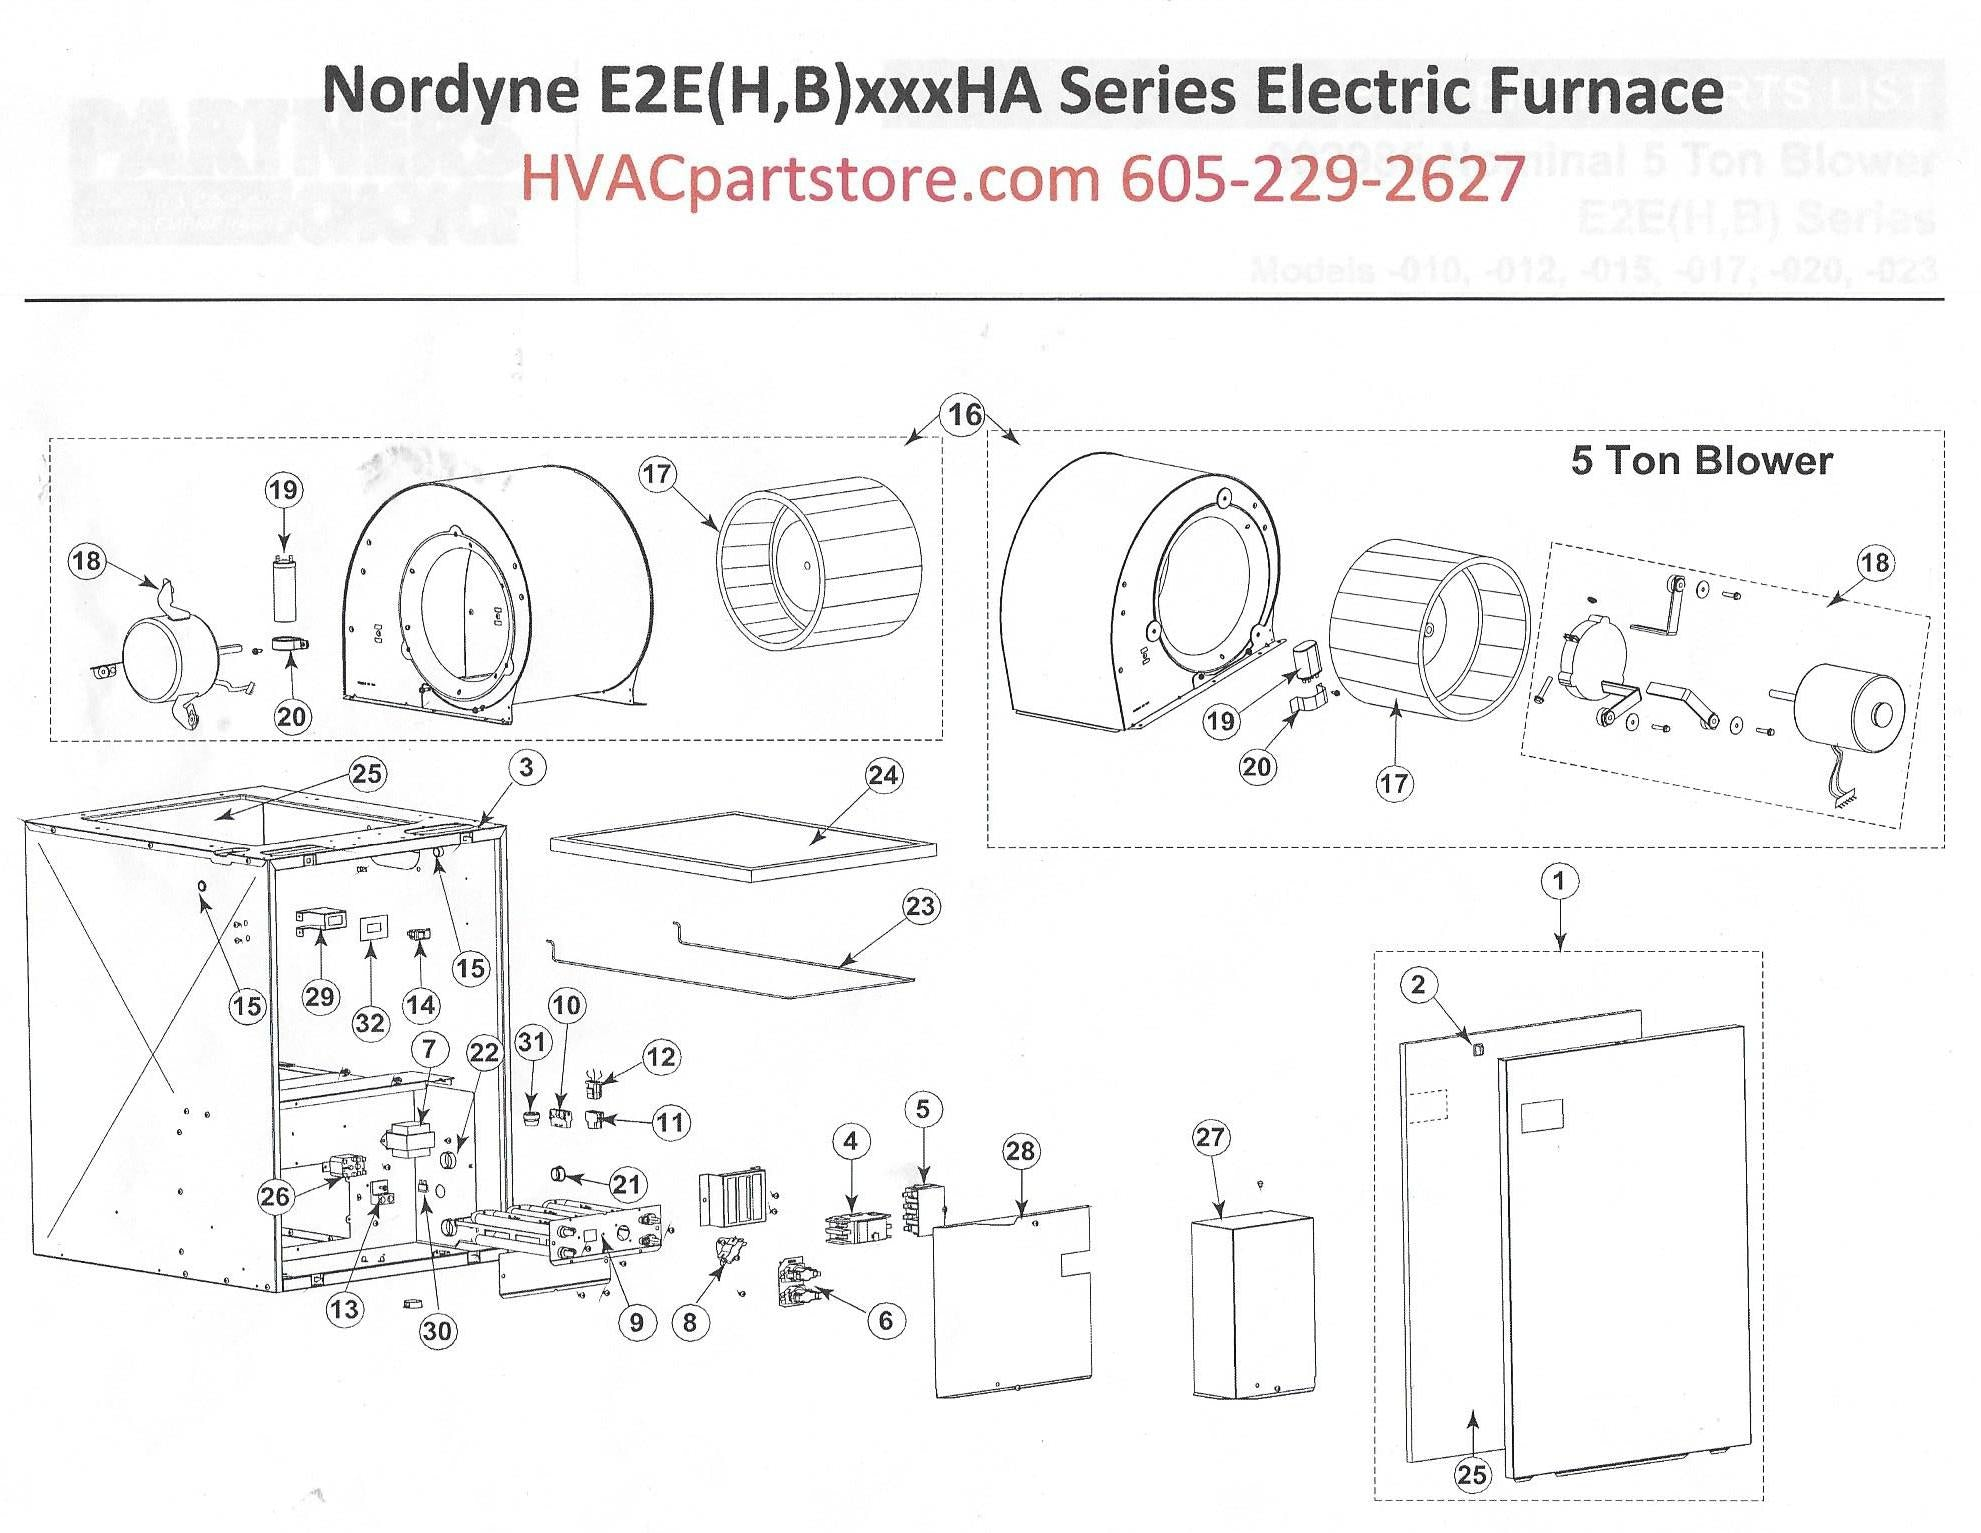 E2eb015hb nordyne electric furnace parts hvacpartstore click here to view a parts listing for the e2eb015hb which includes partial wiring diagrams that we currently have available cheapraybanclubmaster